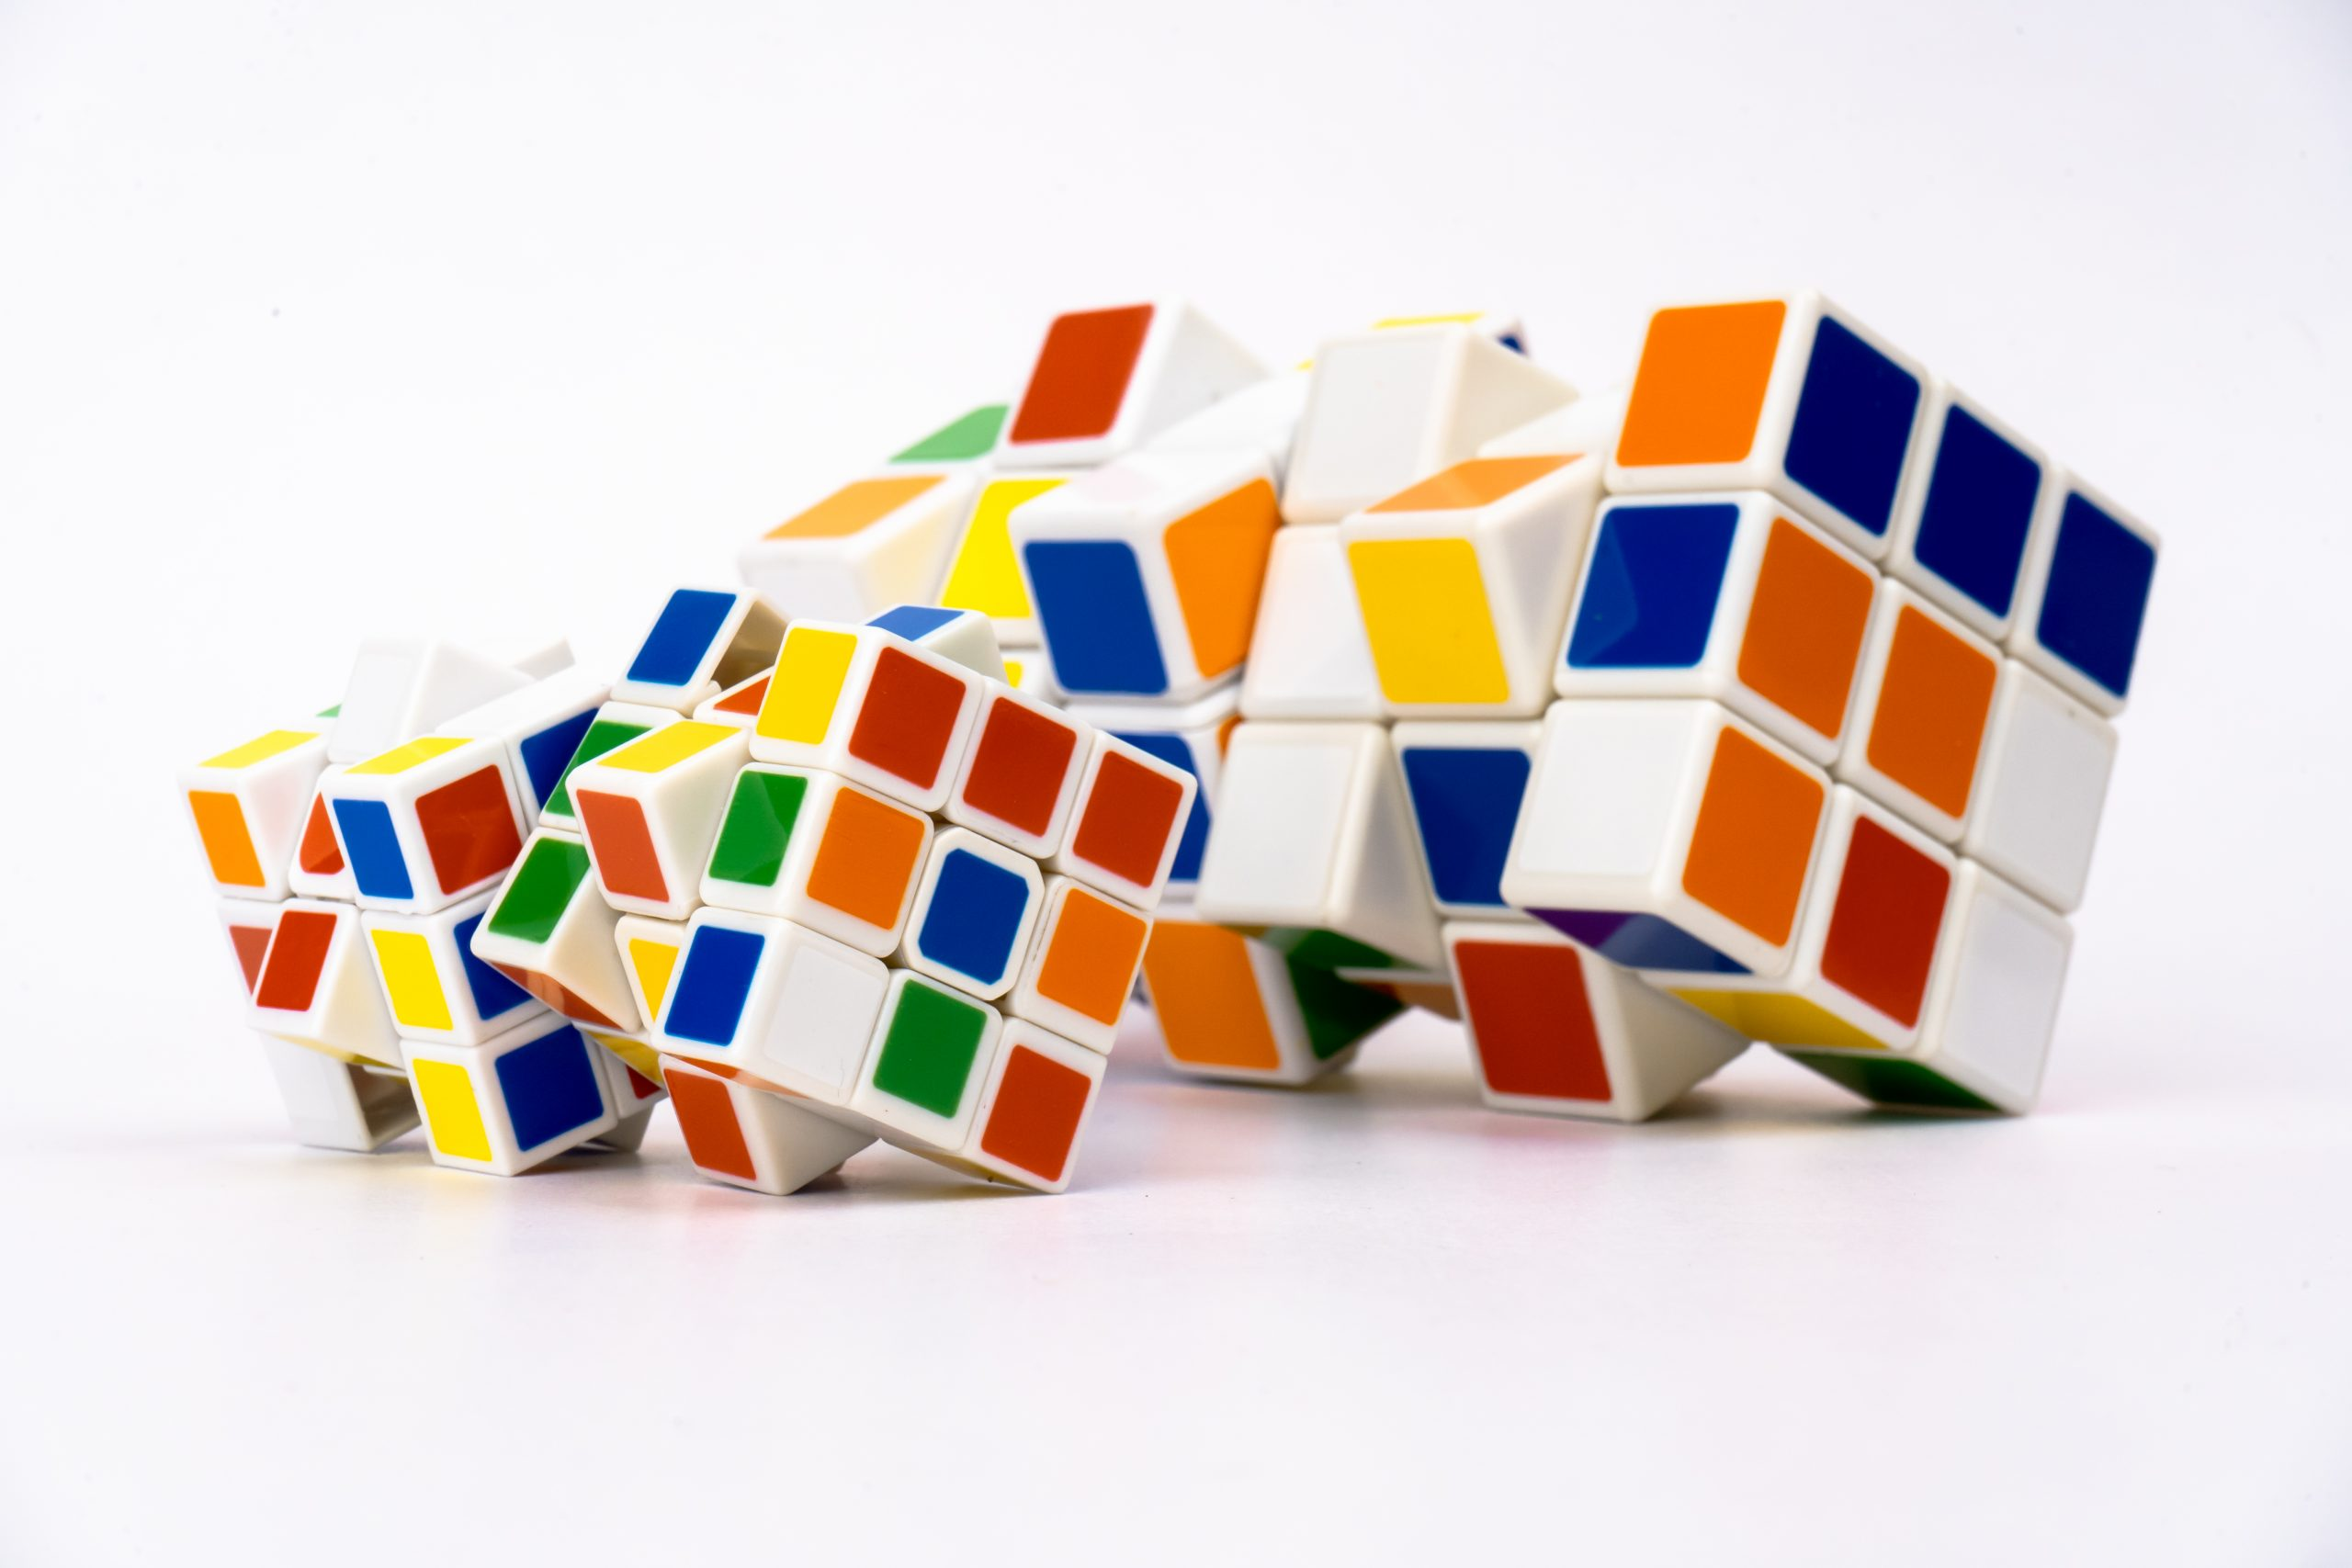 Unsolved Rubik's Cubes